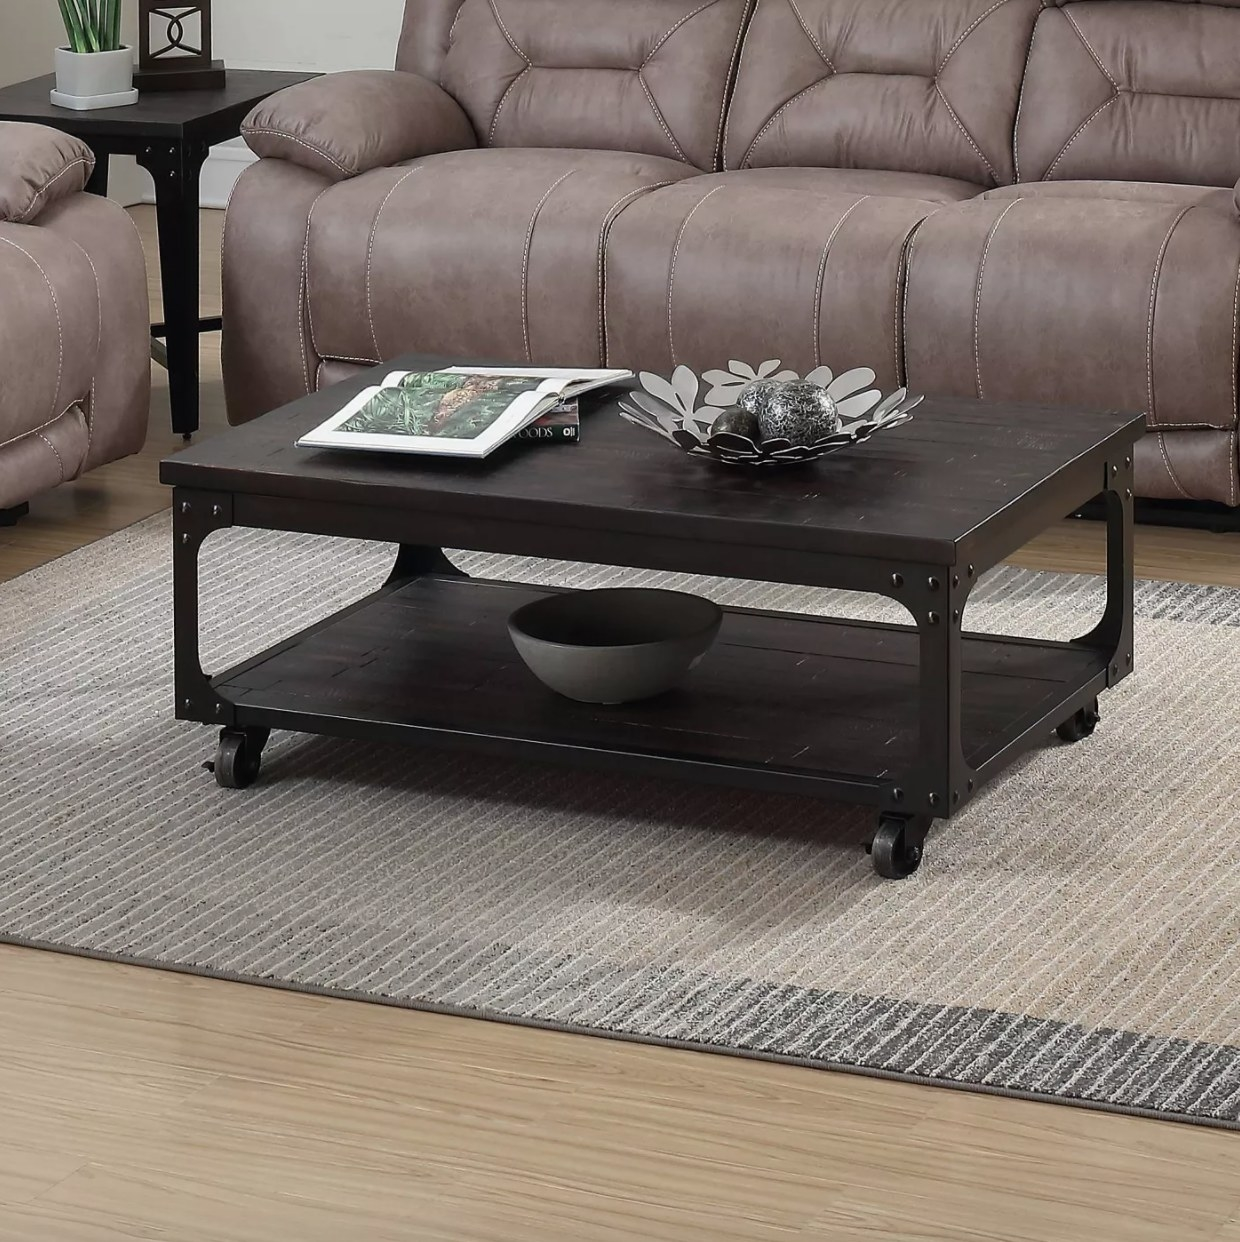 A dark wood coffee table with metal frame, lift top, and caster wheels